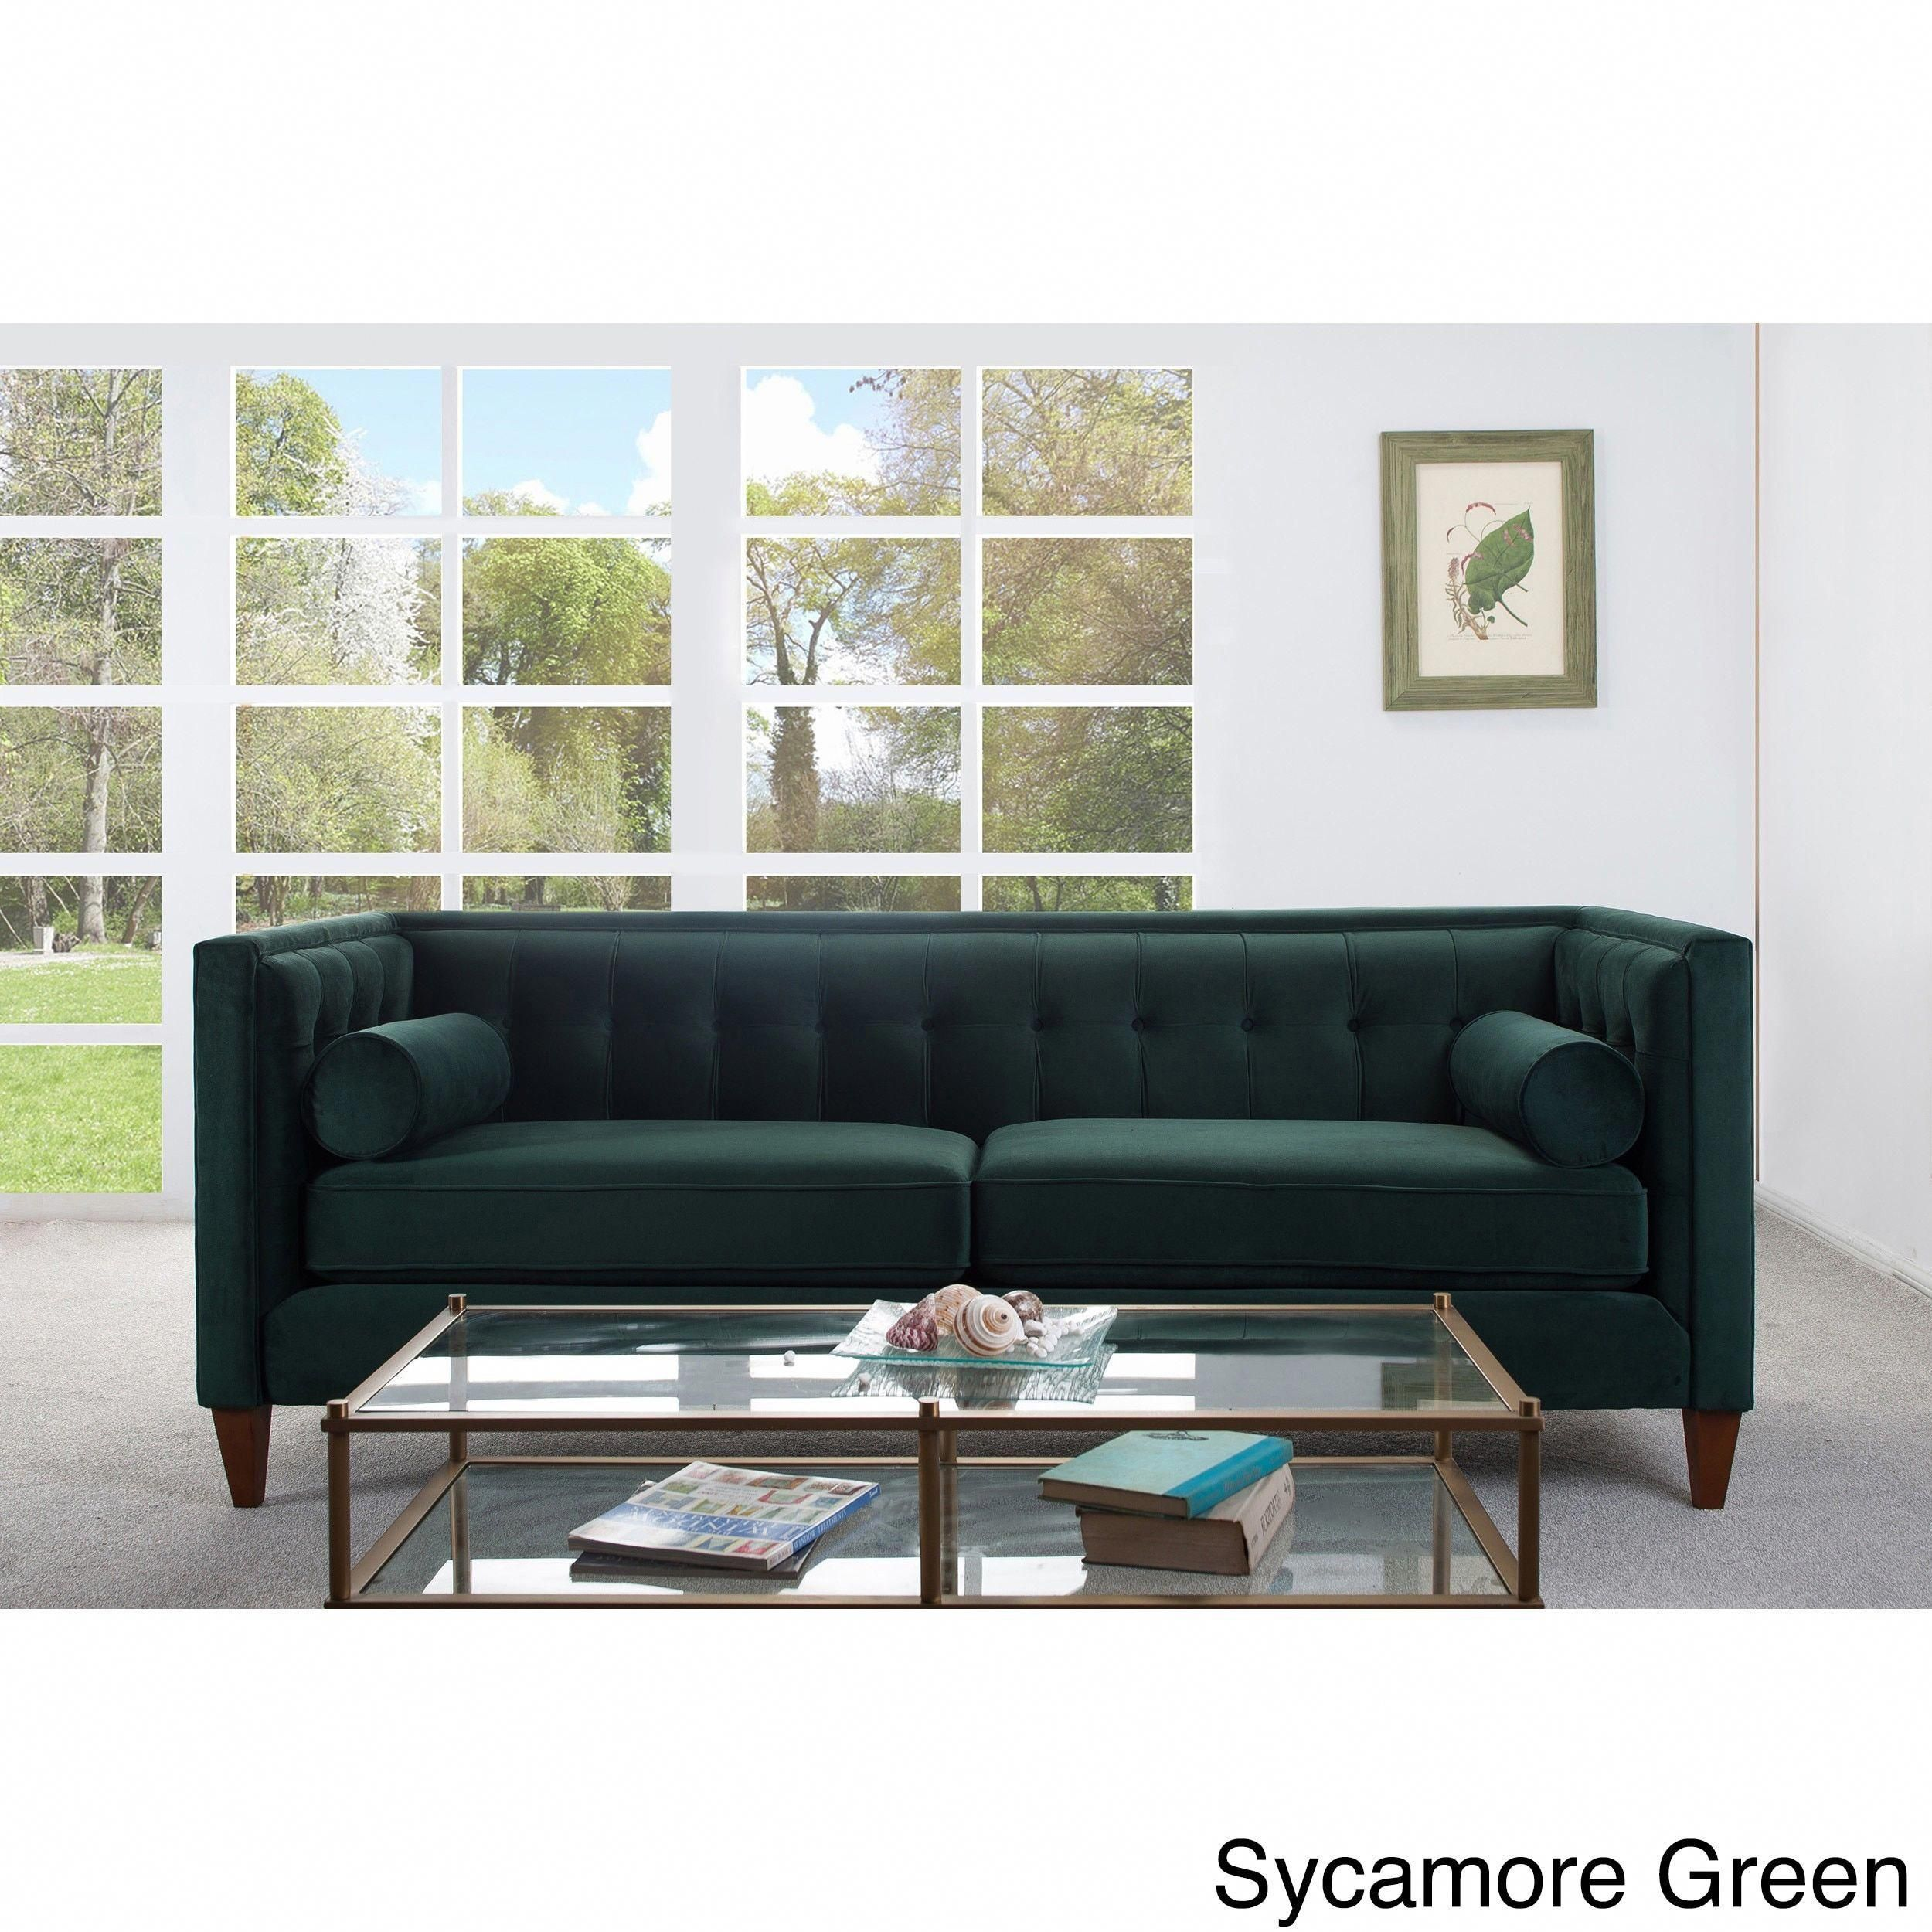 Phenomenal Jennifer Taylor Jack Tuxedo Sofa Sycamore Green A Few Gamerscity Chair Design For Home Gamerscityorg